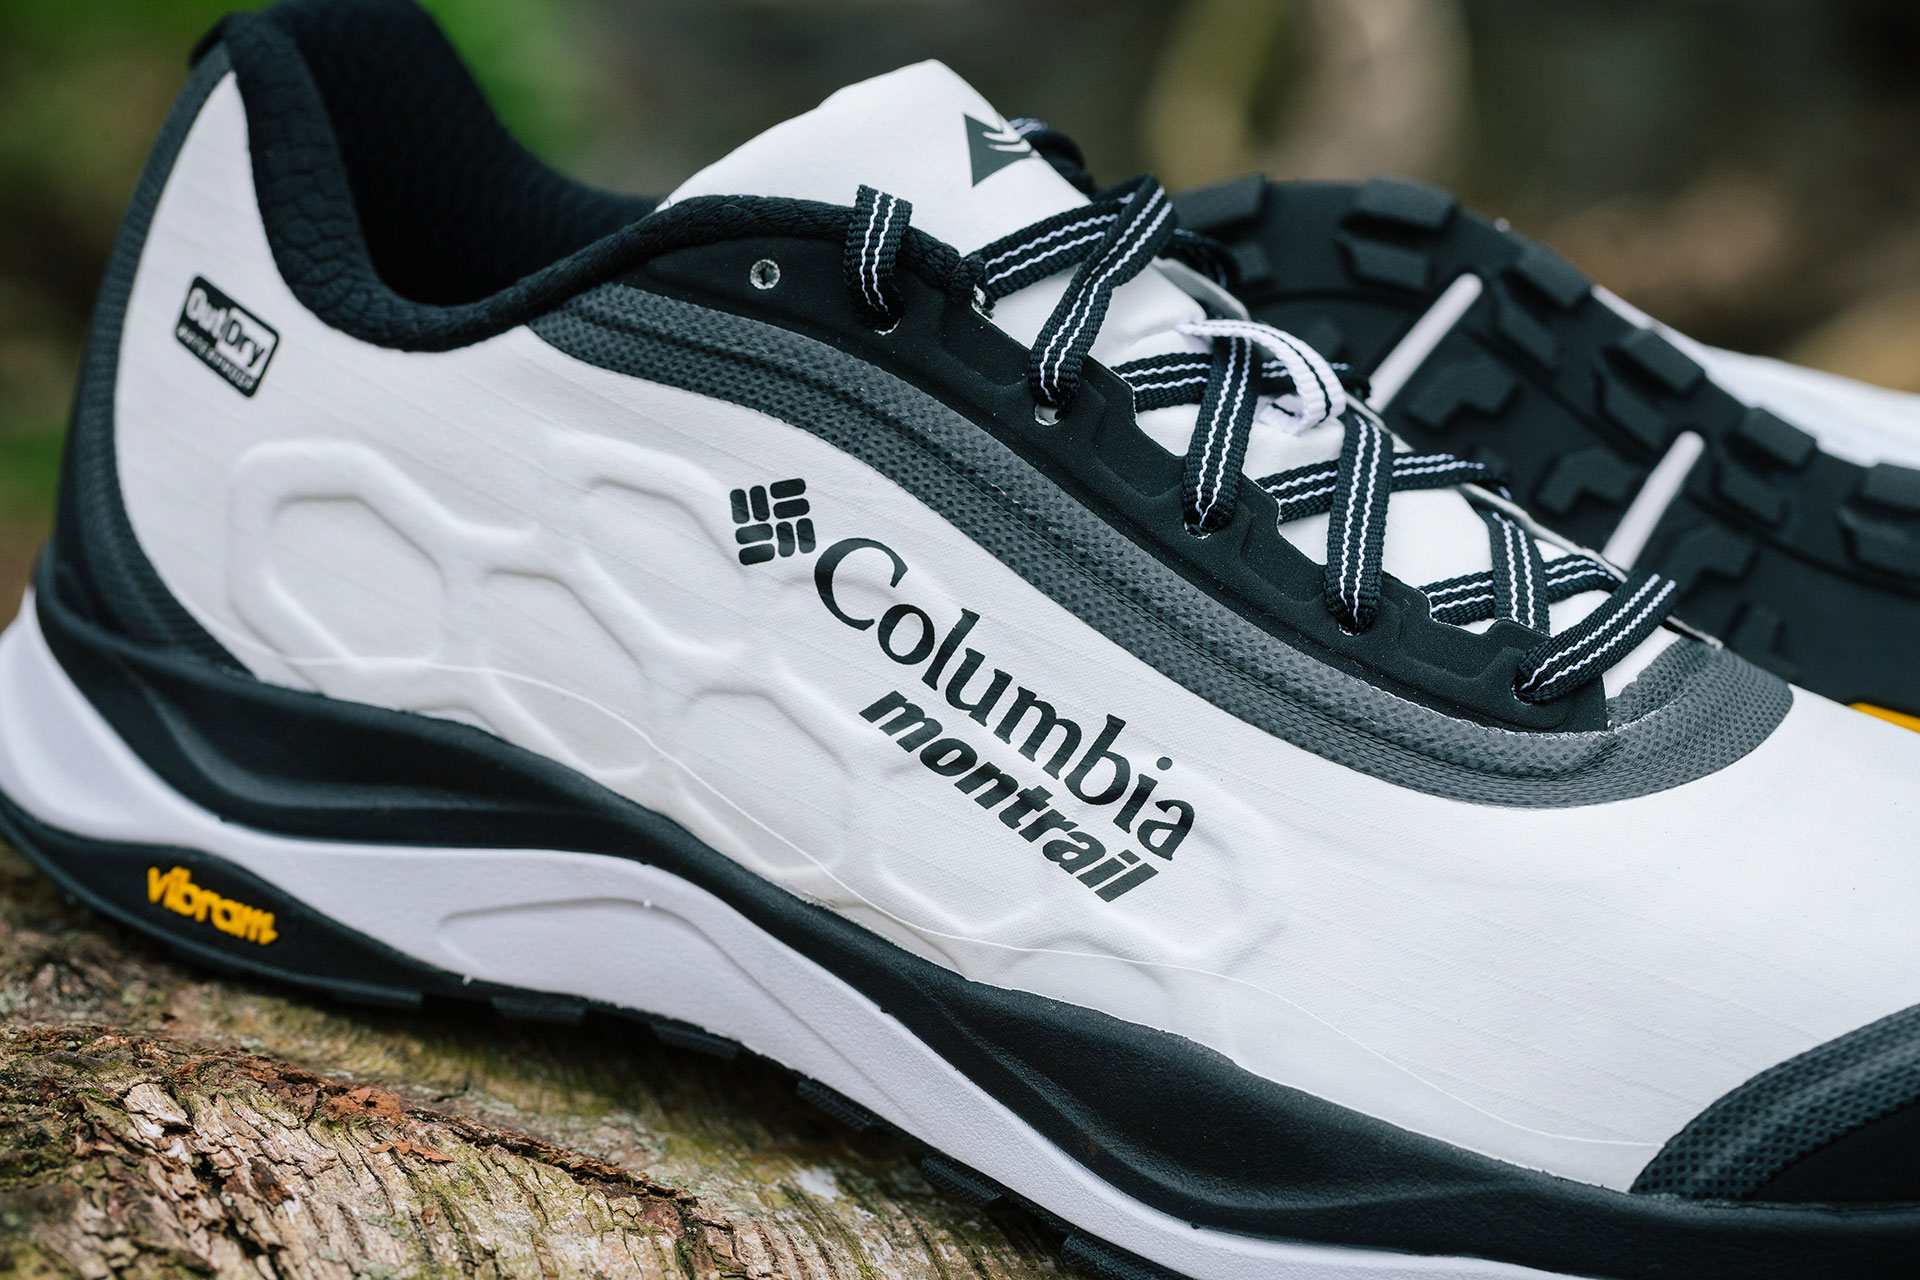 Columbia Montrail Trient OutDry Extreme Trail Runnin